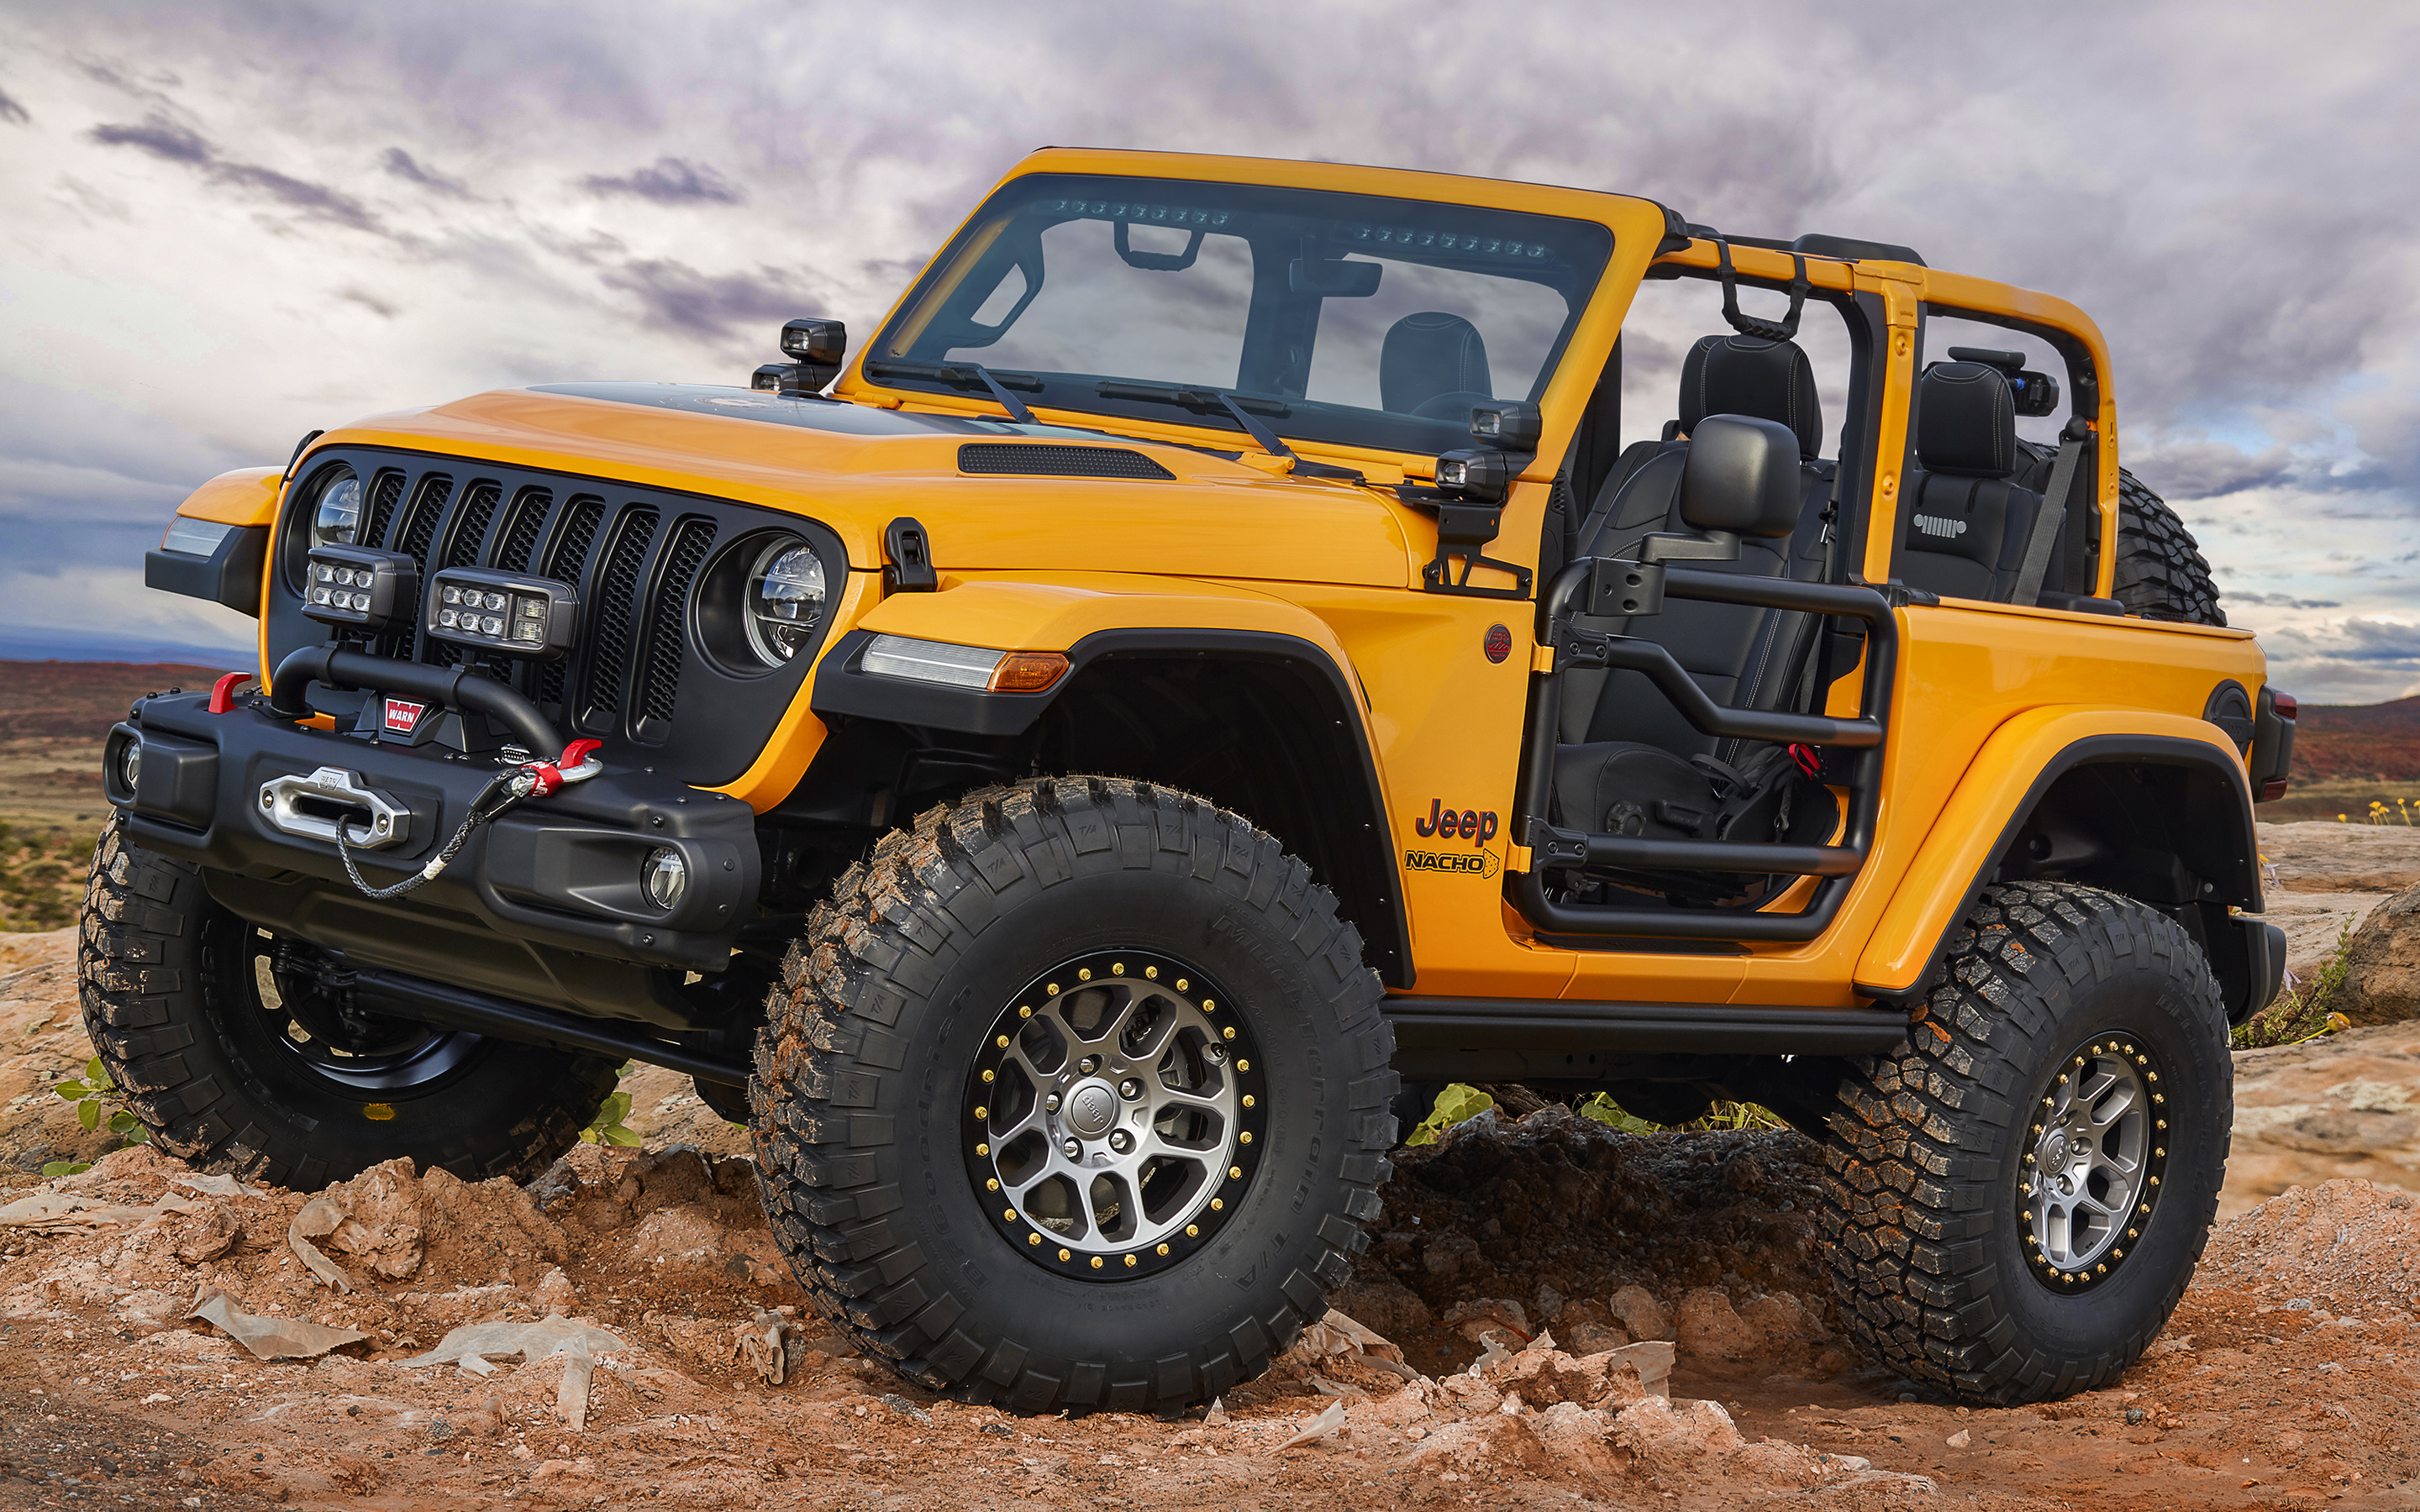 Download wallpapers Jeep Wrangler Nacho Concept, offroad ...